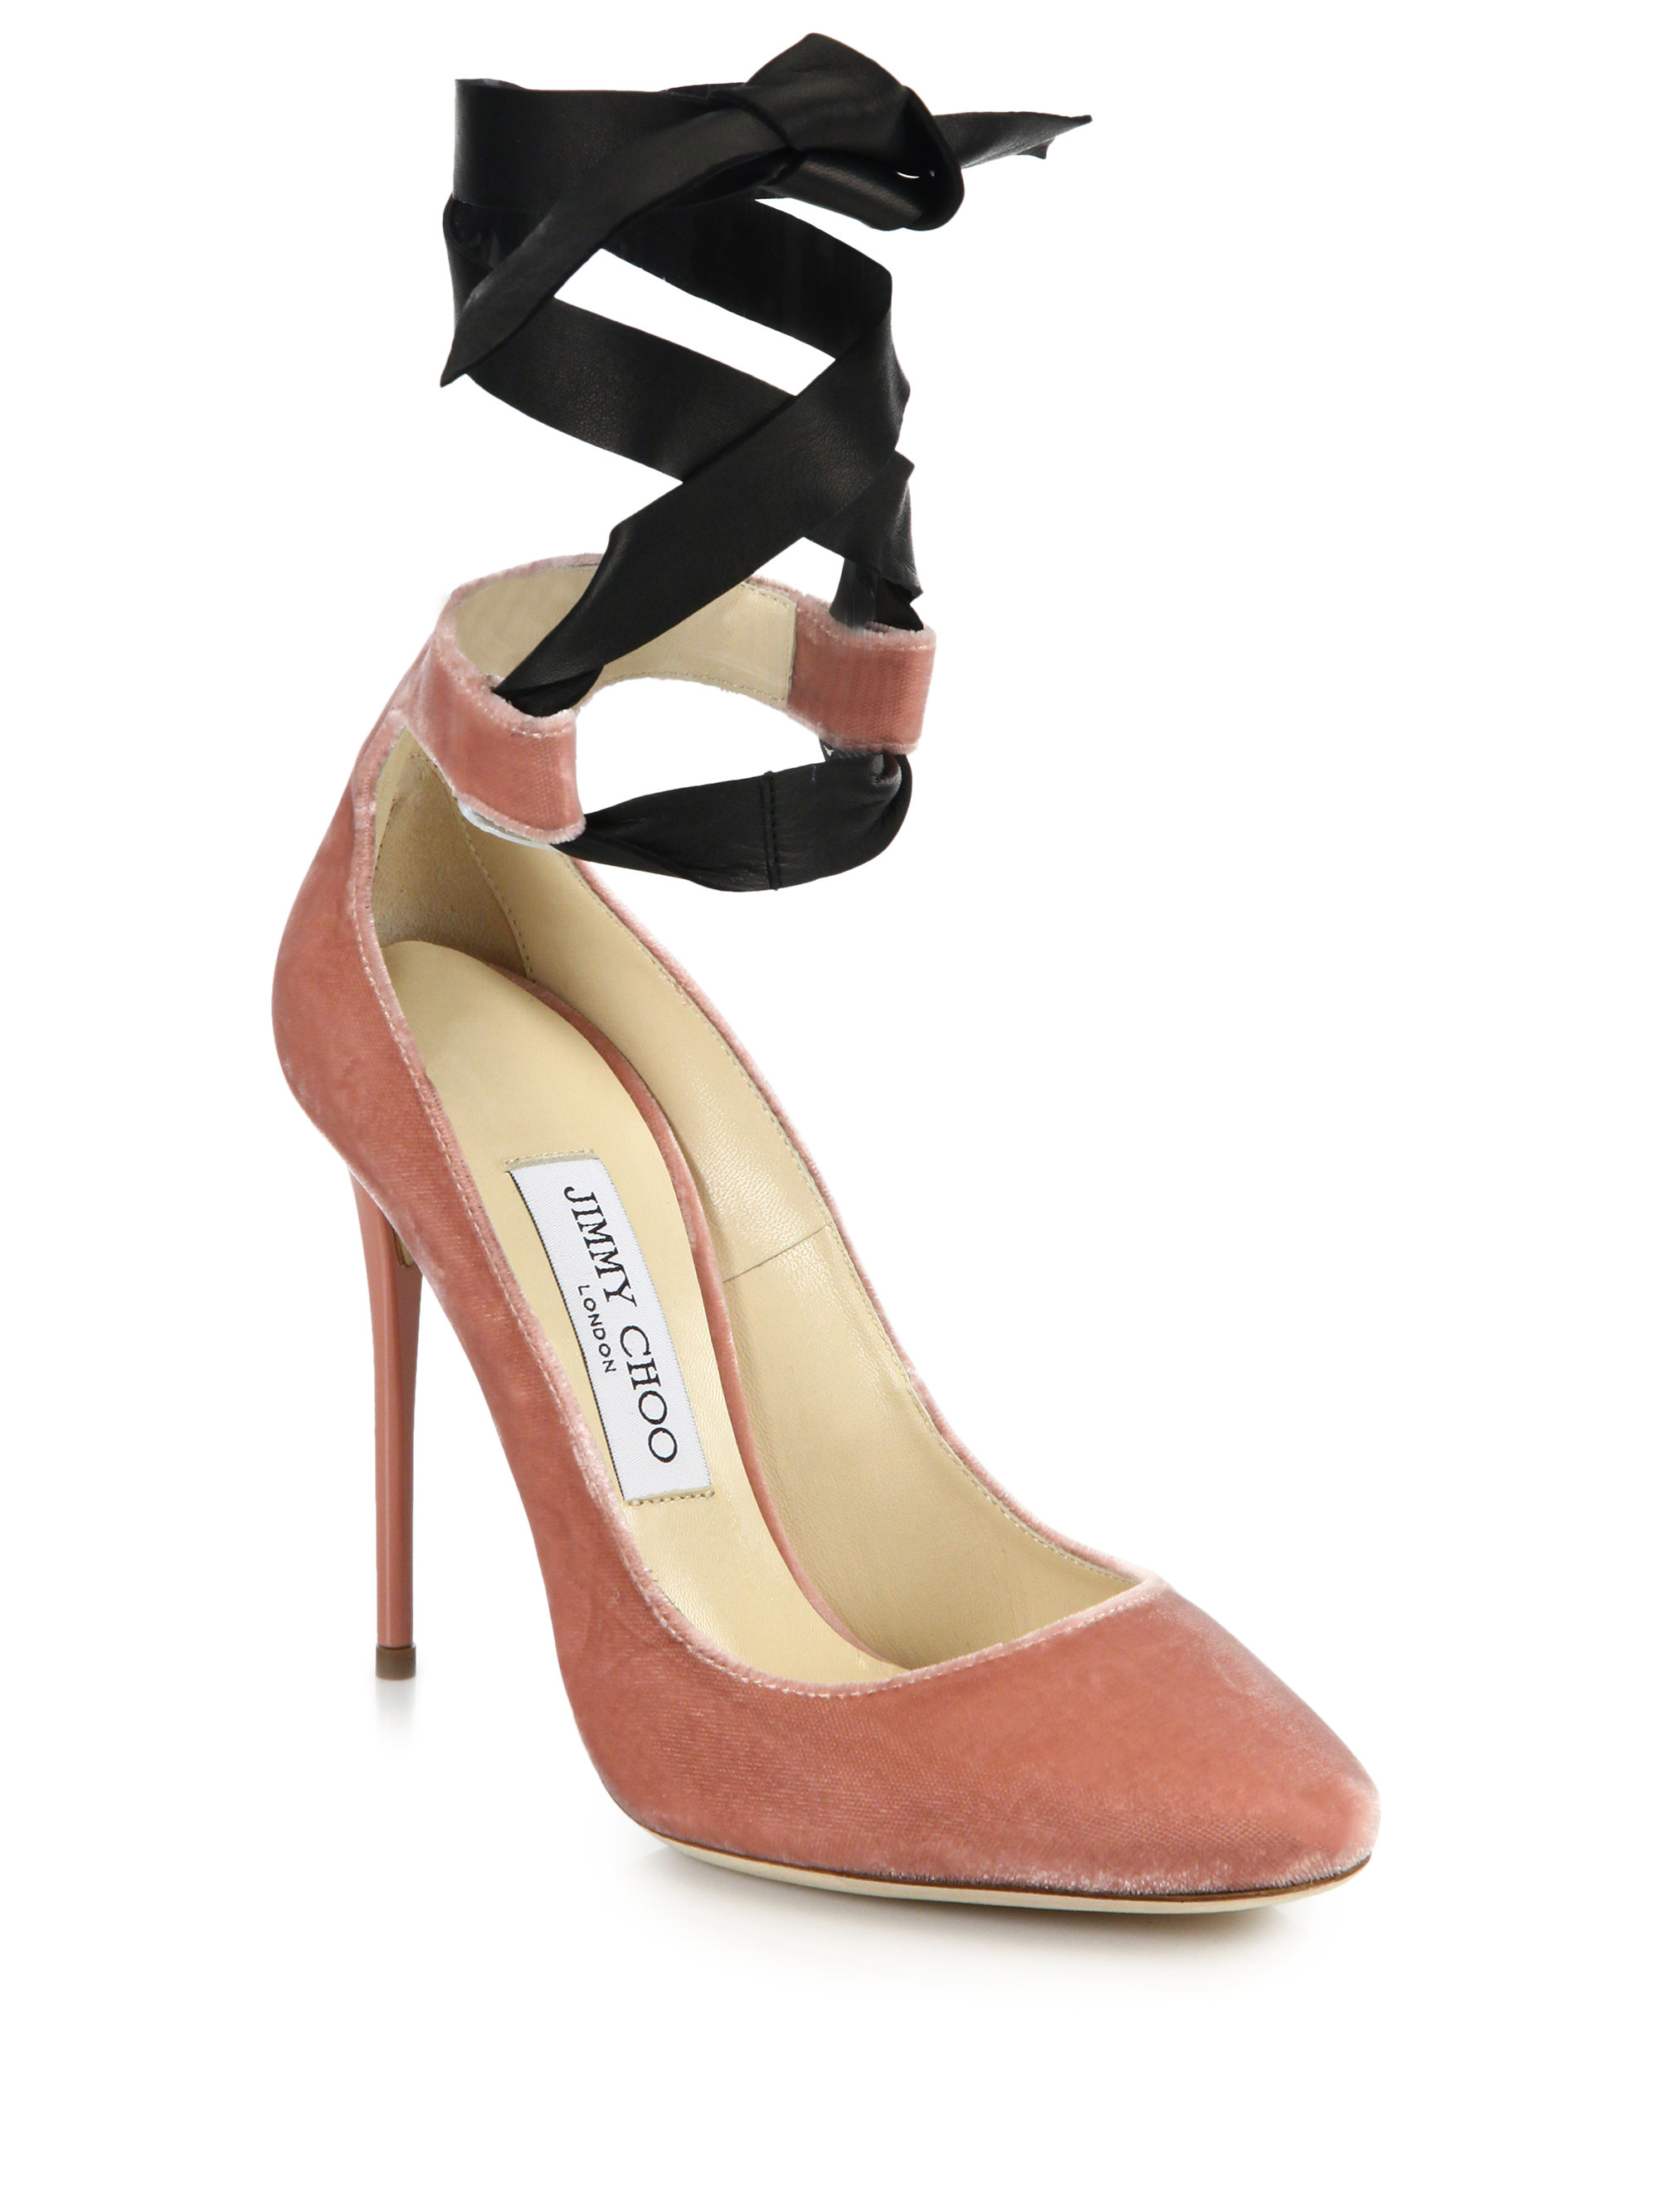 ee660eb11fdc83 ... germany lyst jimmy choo rosana velvet leather ankle tie pumps in pink  e7bcb 2f6ec